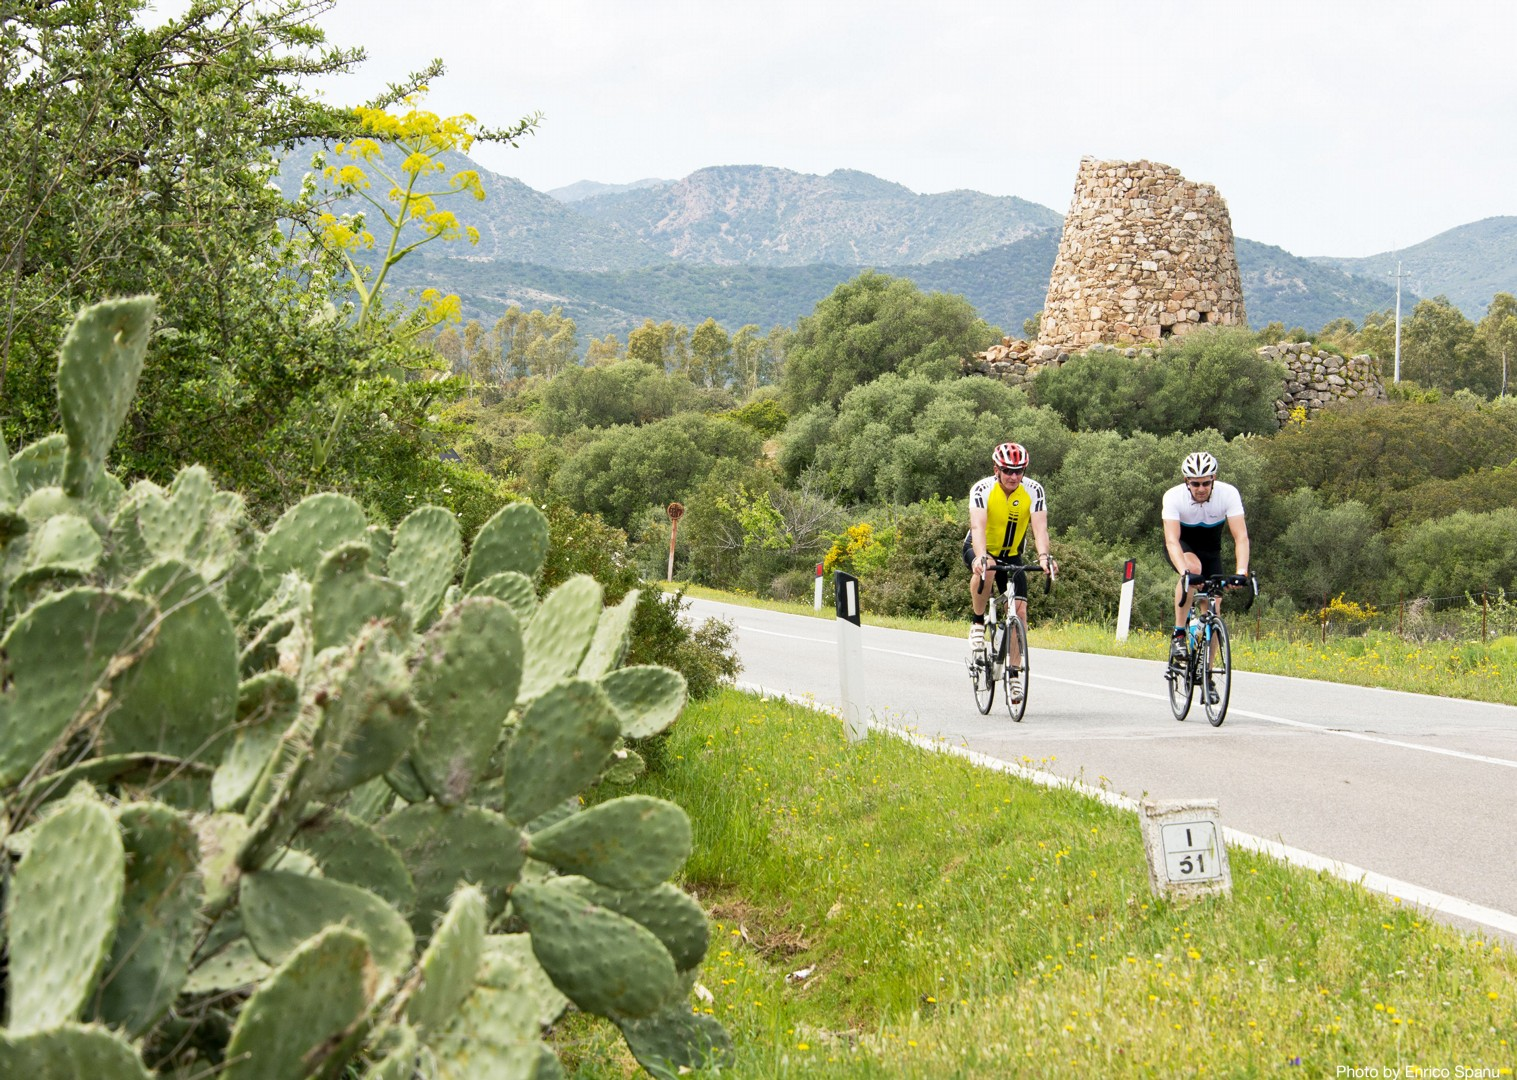 Sardinian-Cycling-Holiday-Road-Sardinian-Mountains.jpg - Italy - Sardinia - Mountain Explorer - Guided Road Cycling Holiday - Road Cycling